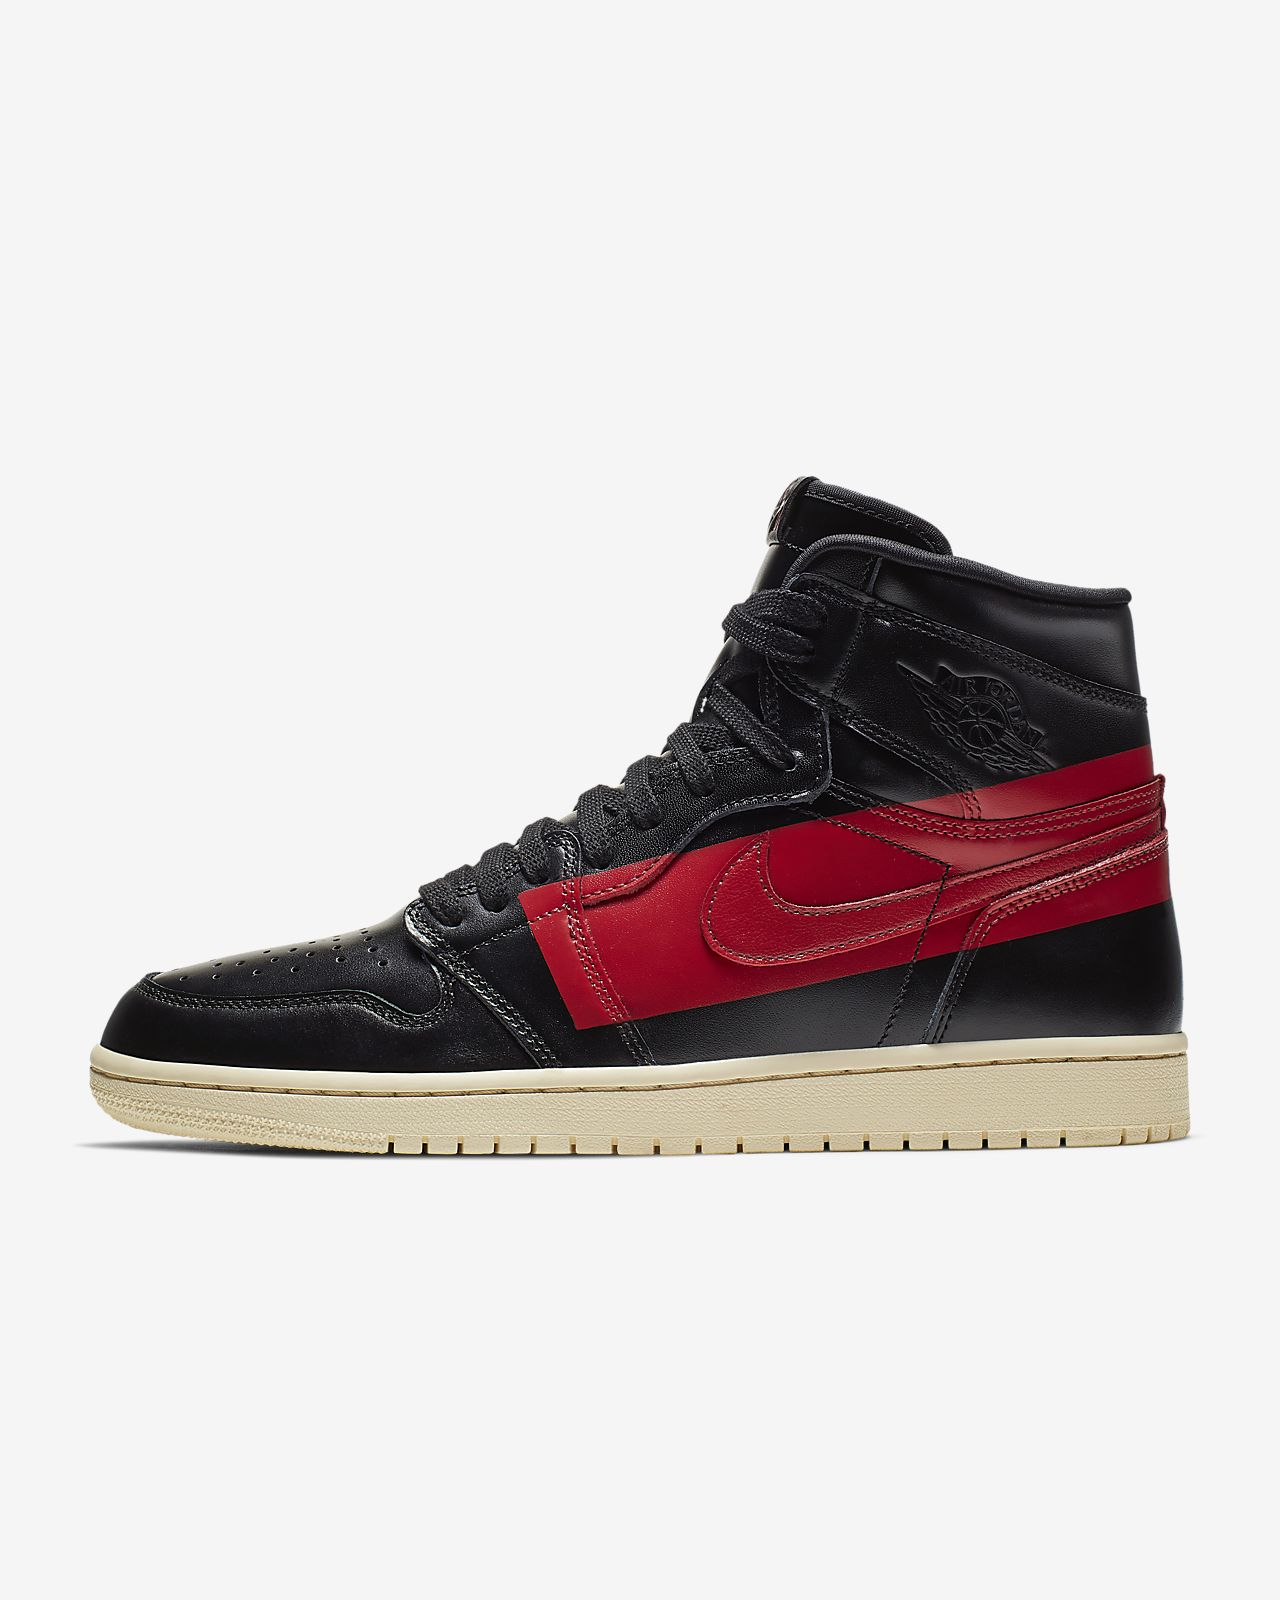 Air Jordan 1 Defiant Style Men's Shoe